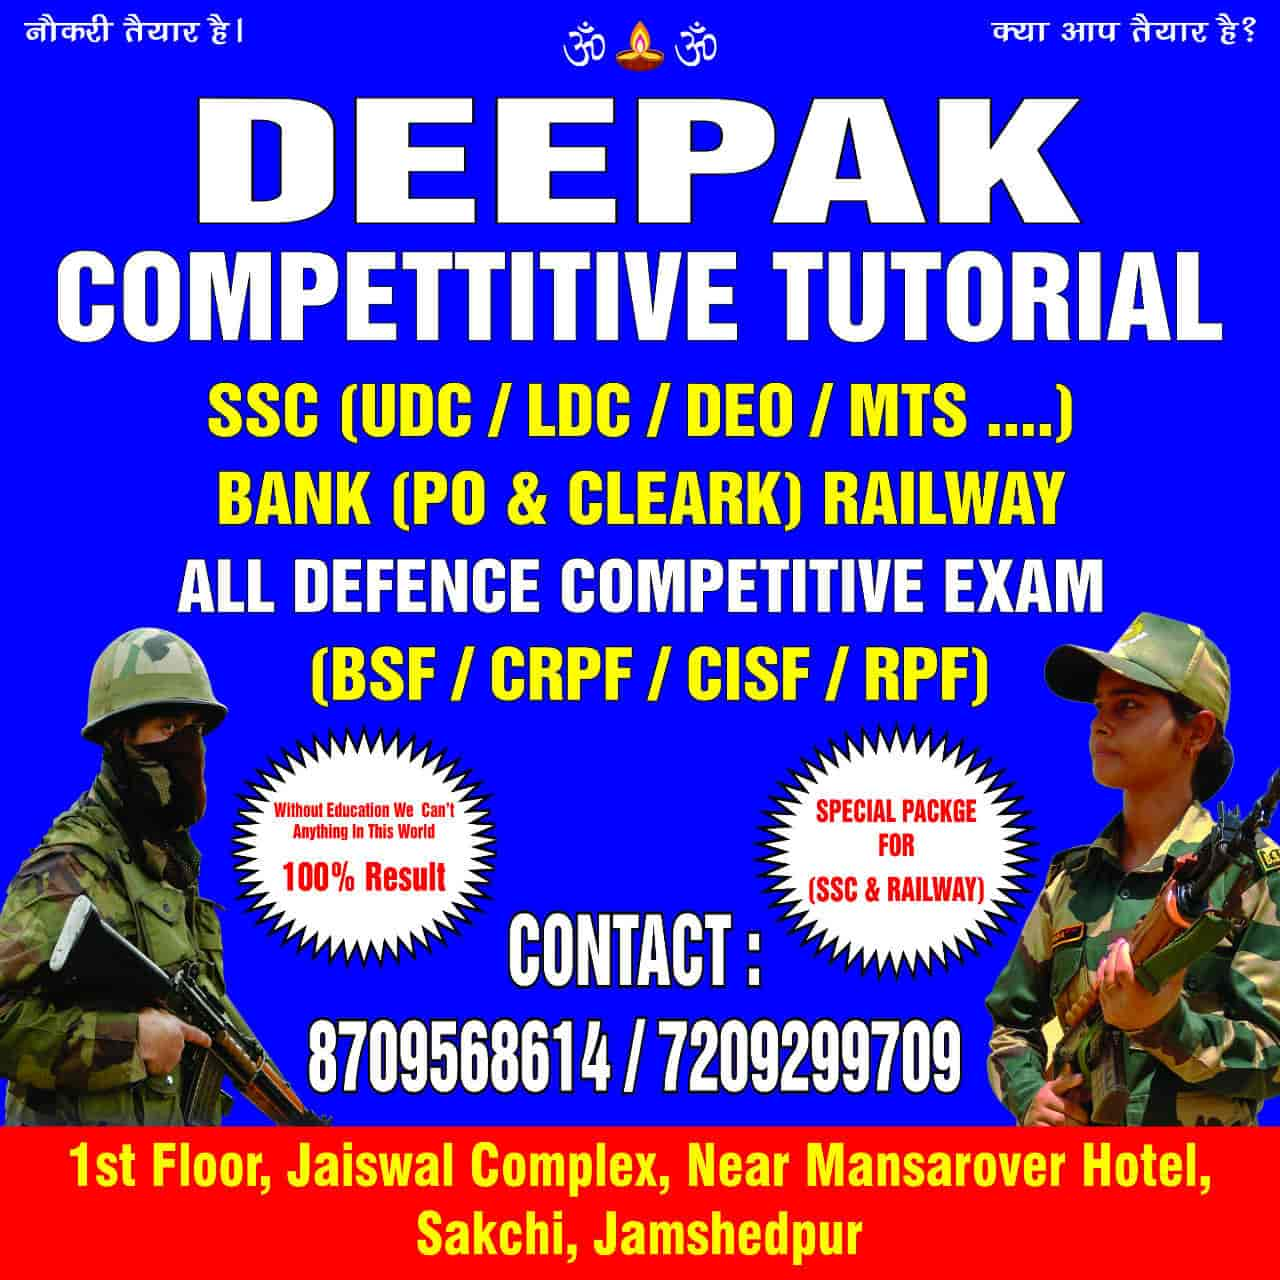 Deepak Competitive Tutorial, Sakchi - Tutorials For Ssc Cgl